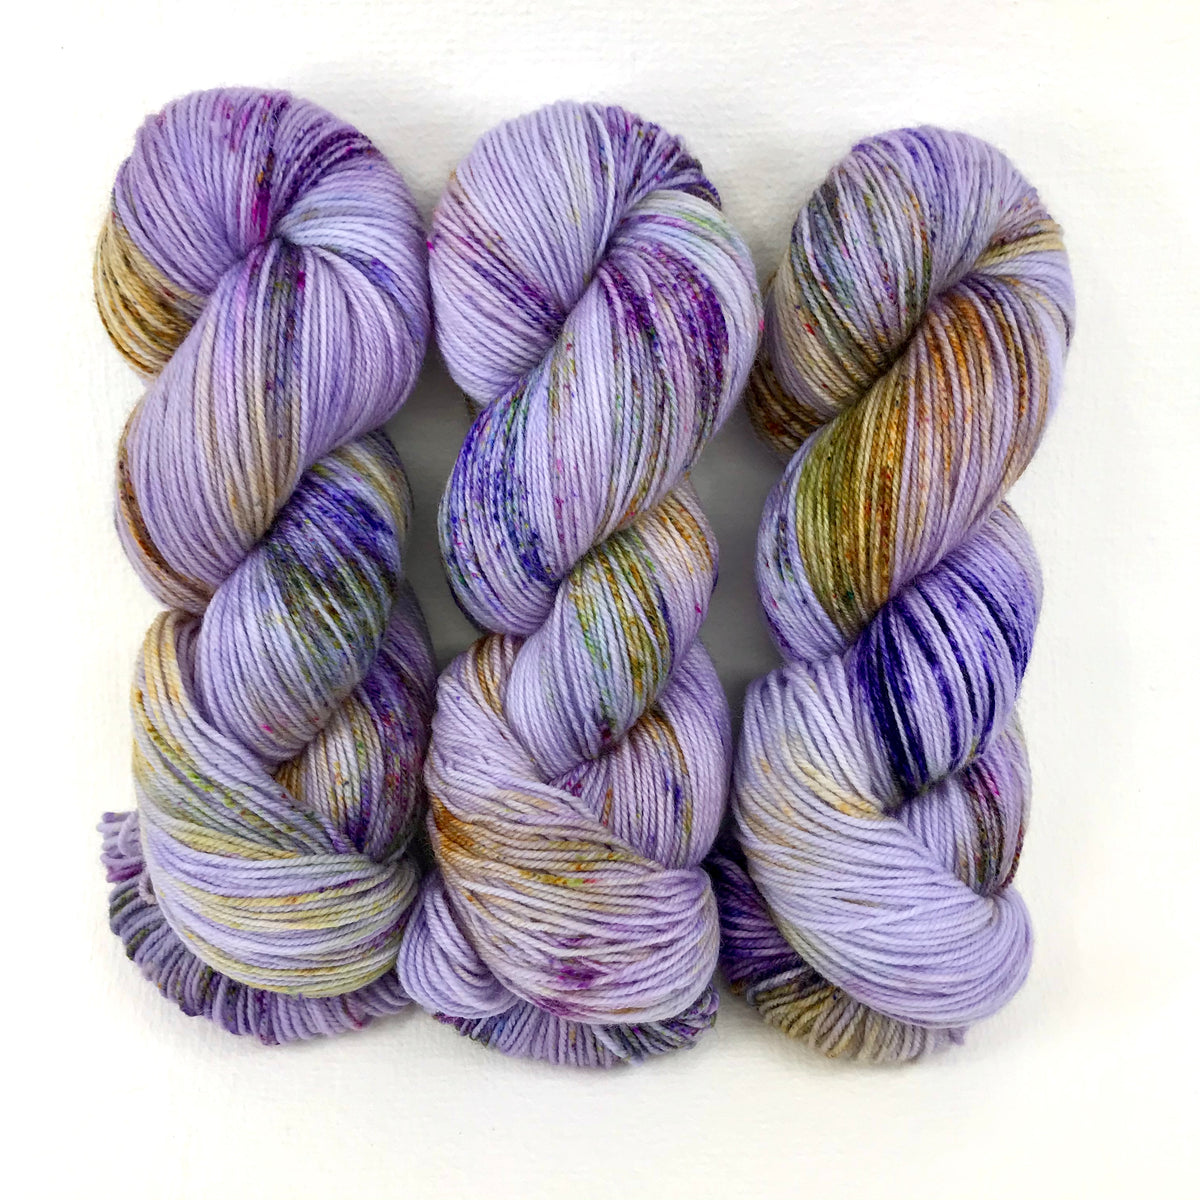 Lavender Fields Forever - Revival Worsted - Dyed Stock